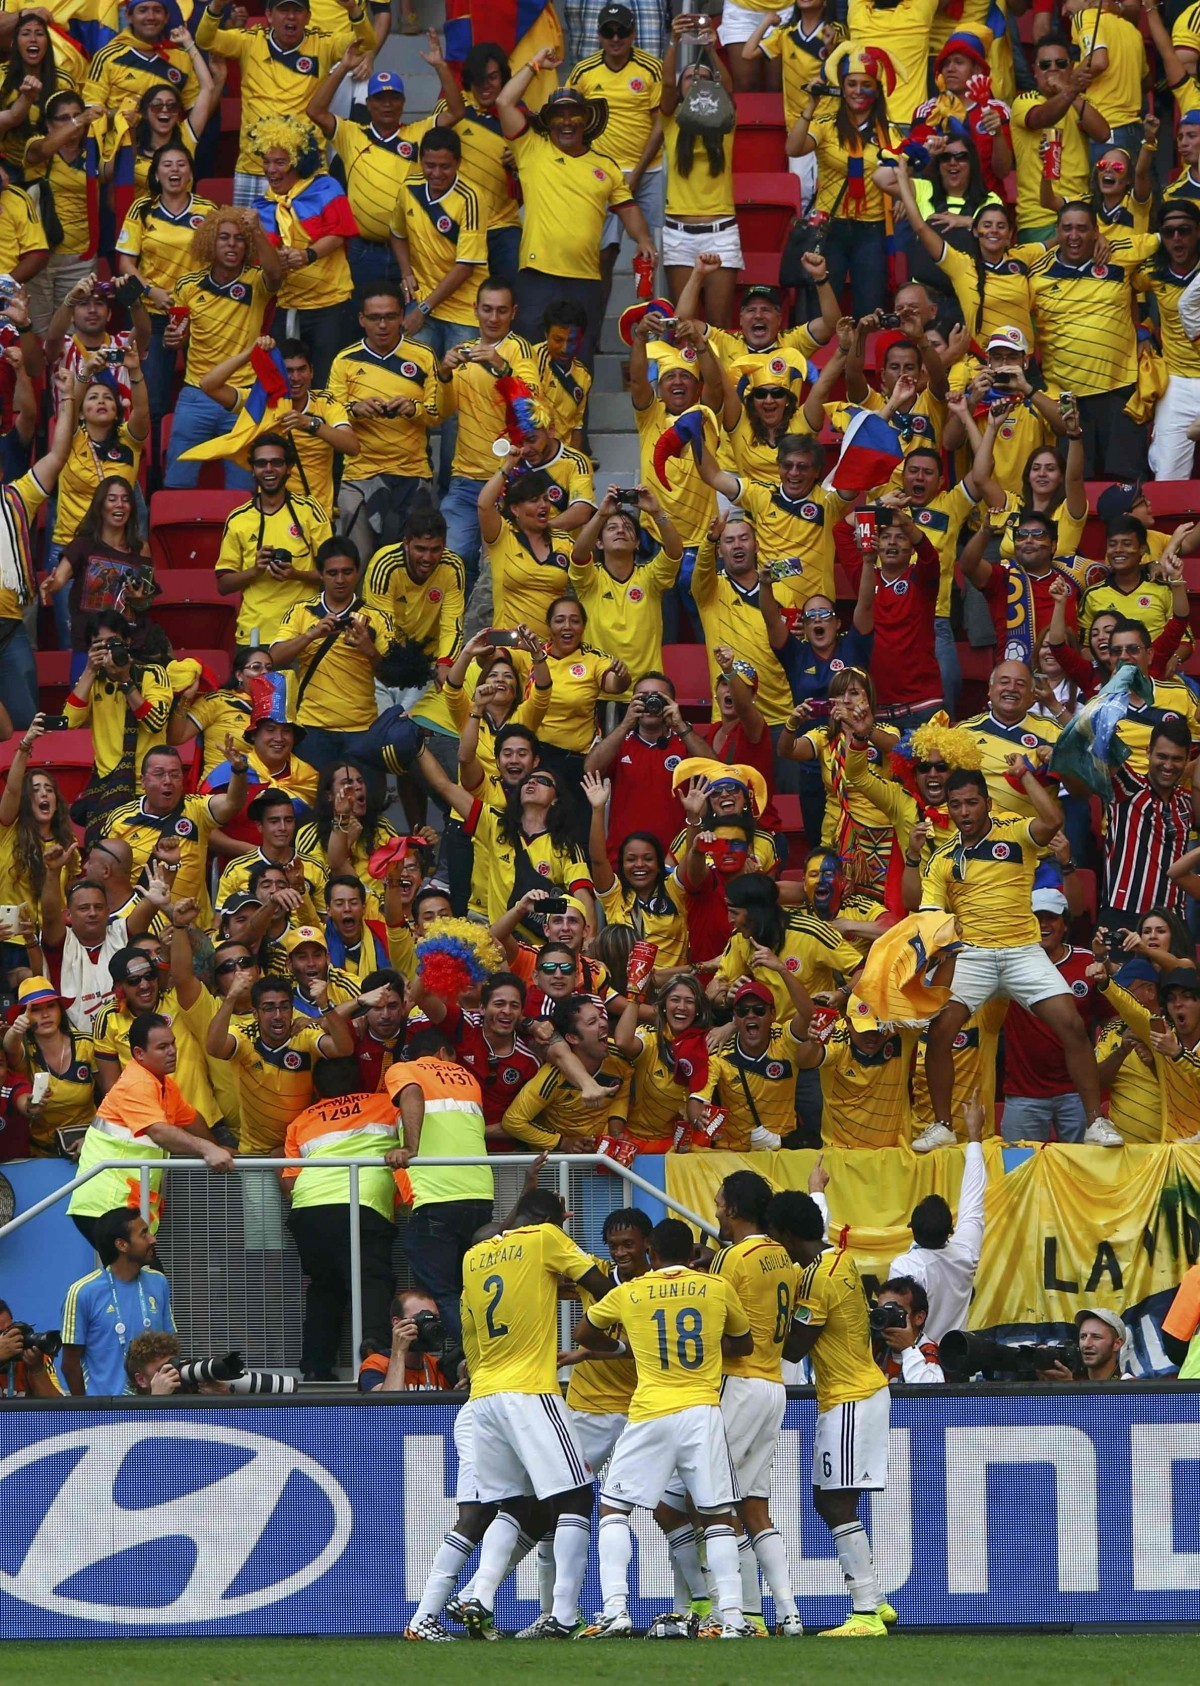 Colombia vs Ivory Coast